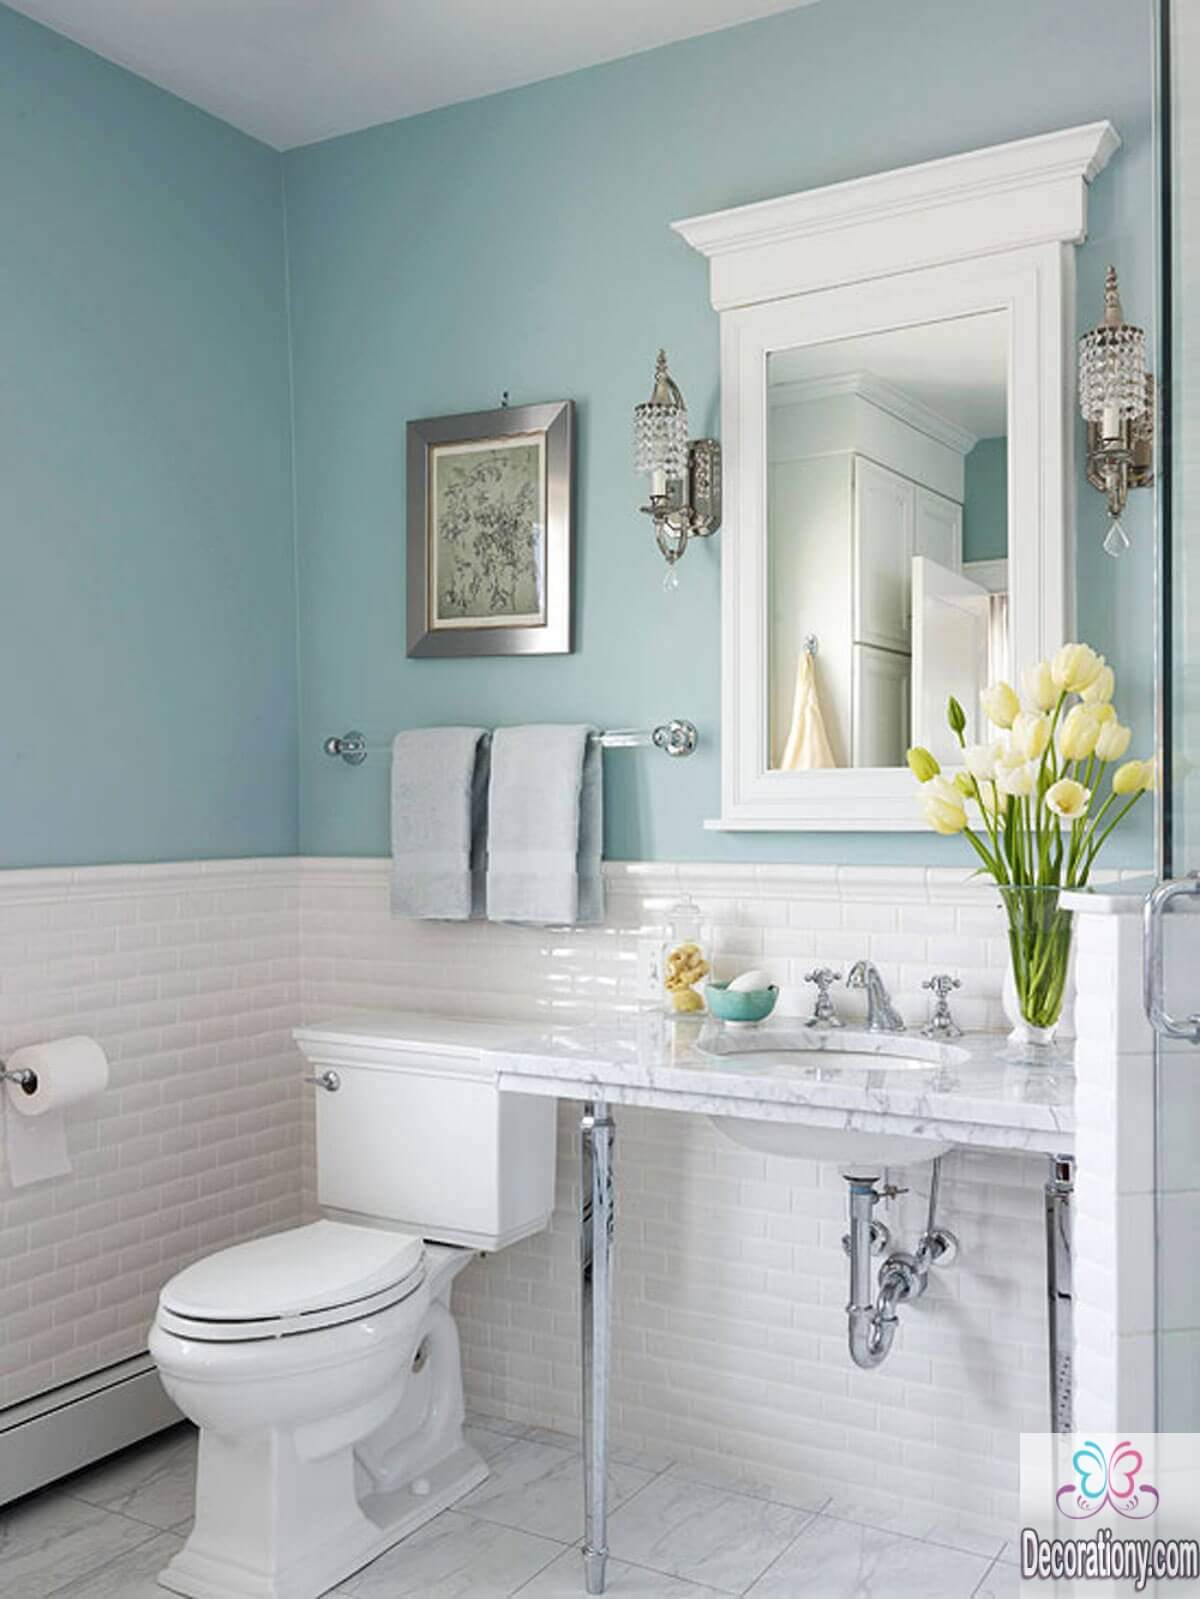 10 affordable colors for small bathrooms decoration y for Small bathroom decor ideas 2016